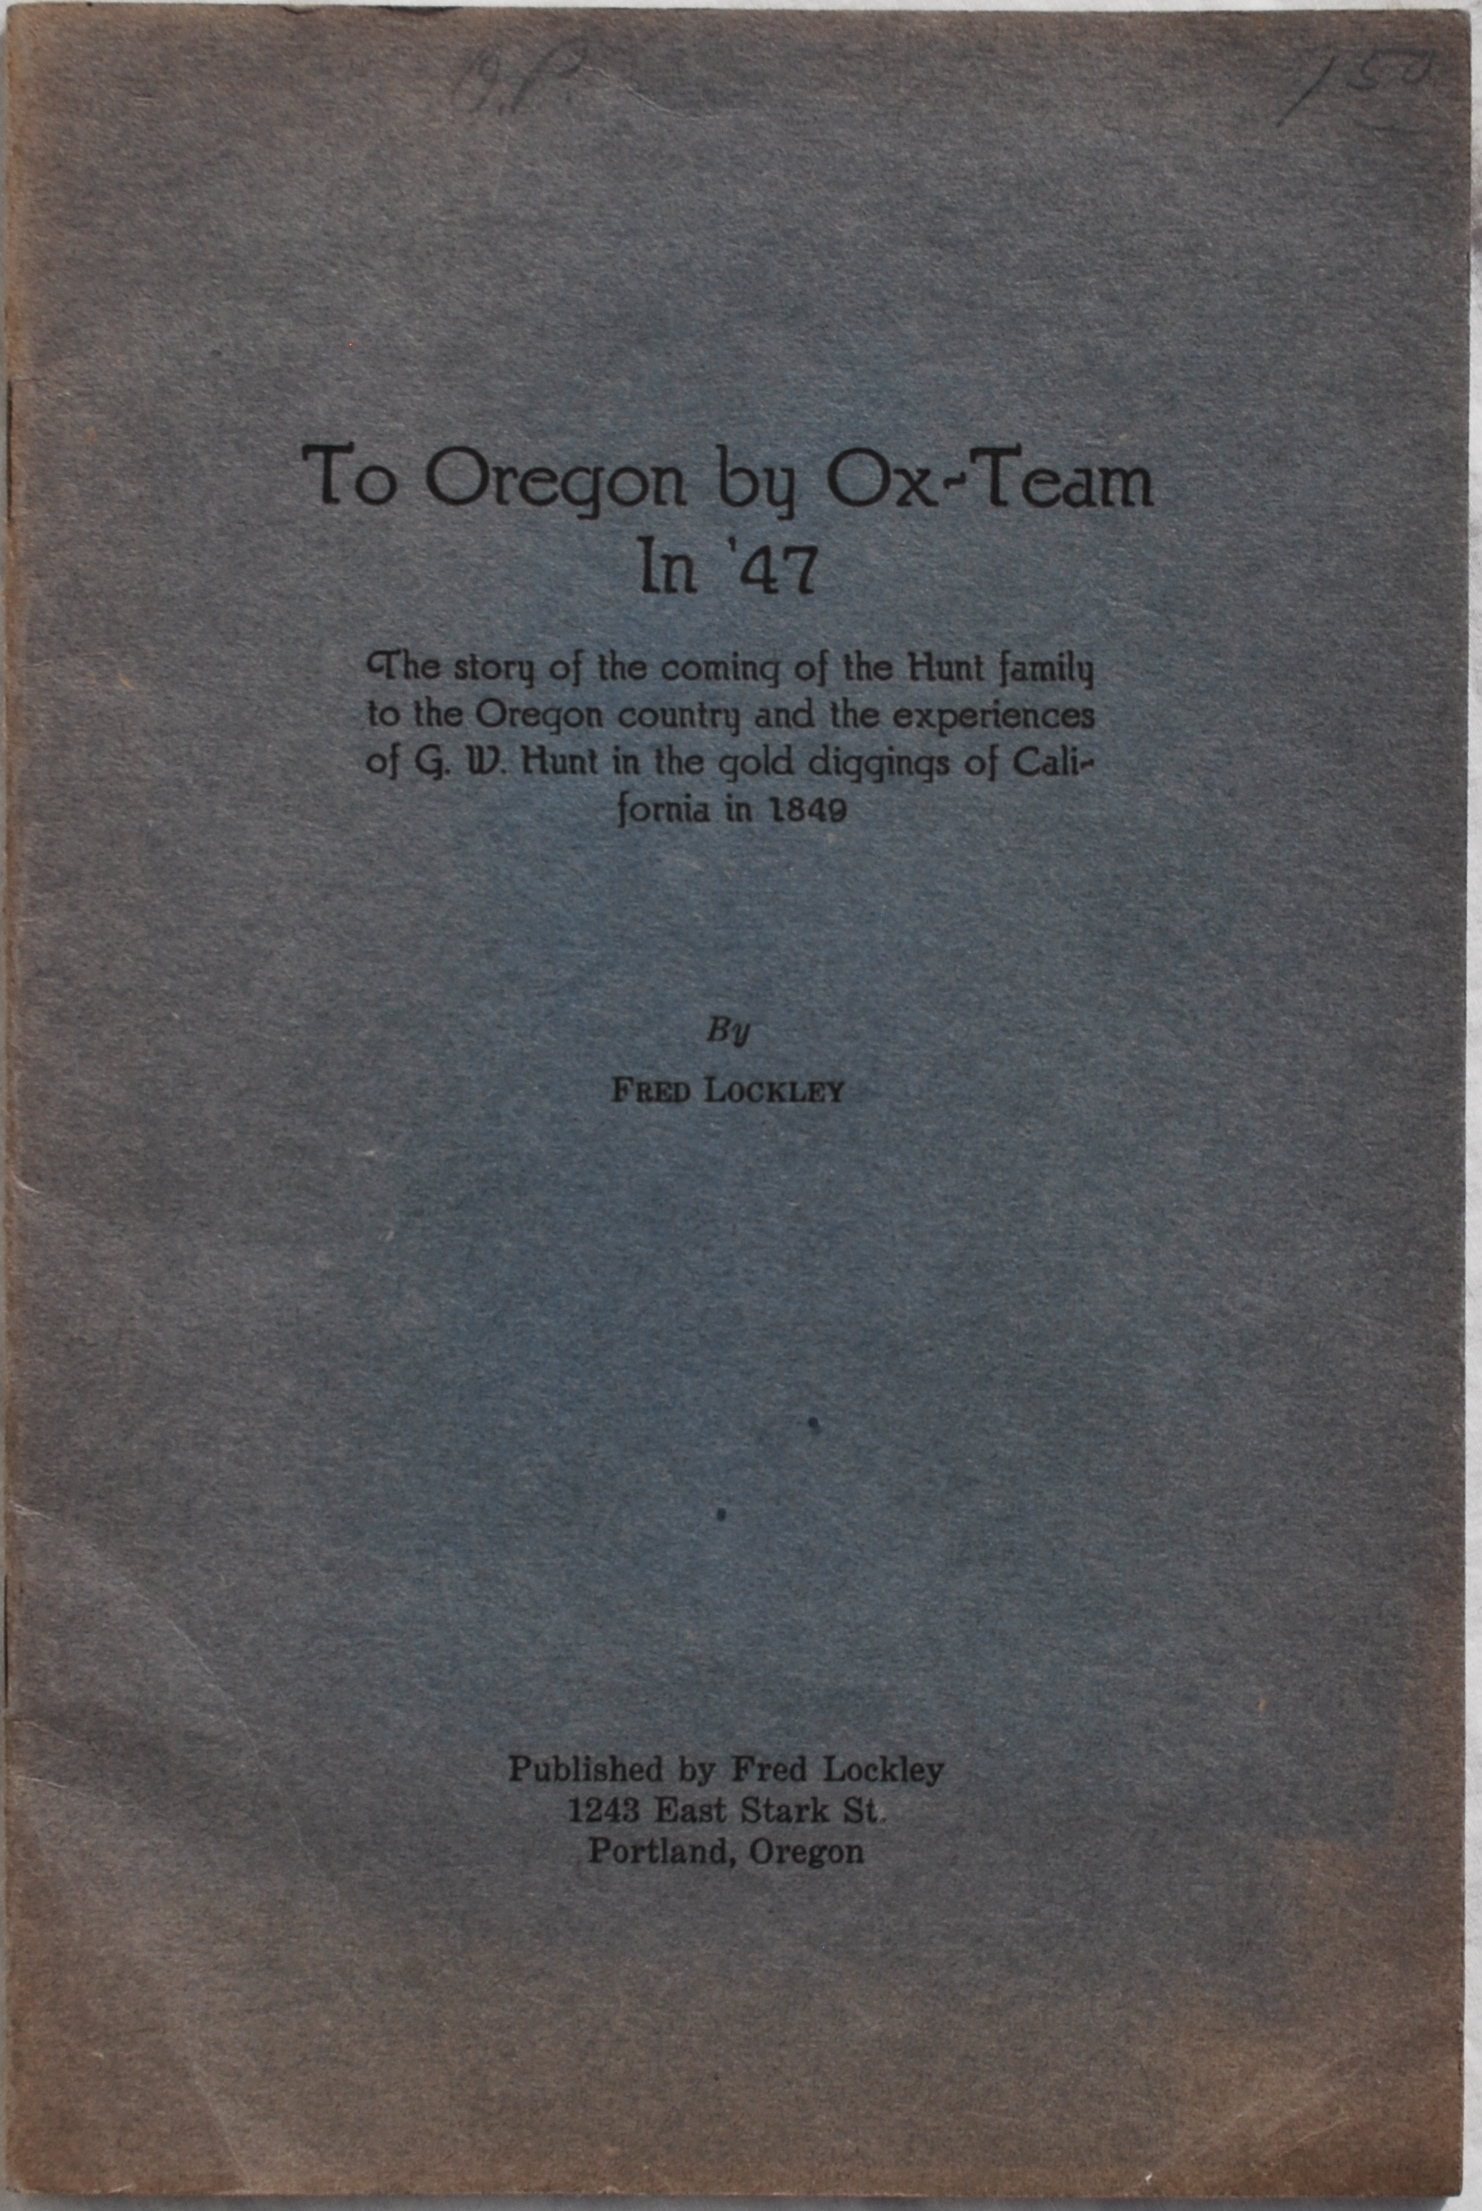 Image for To Oregon by Ox-Team in '47: The Story of the Coming of the Hunt Family to the Oregon Country and the Experiences of G. W. Hunt in the Gold Diggings of California in 1849.